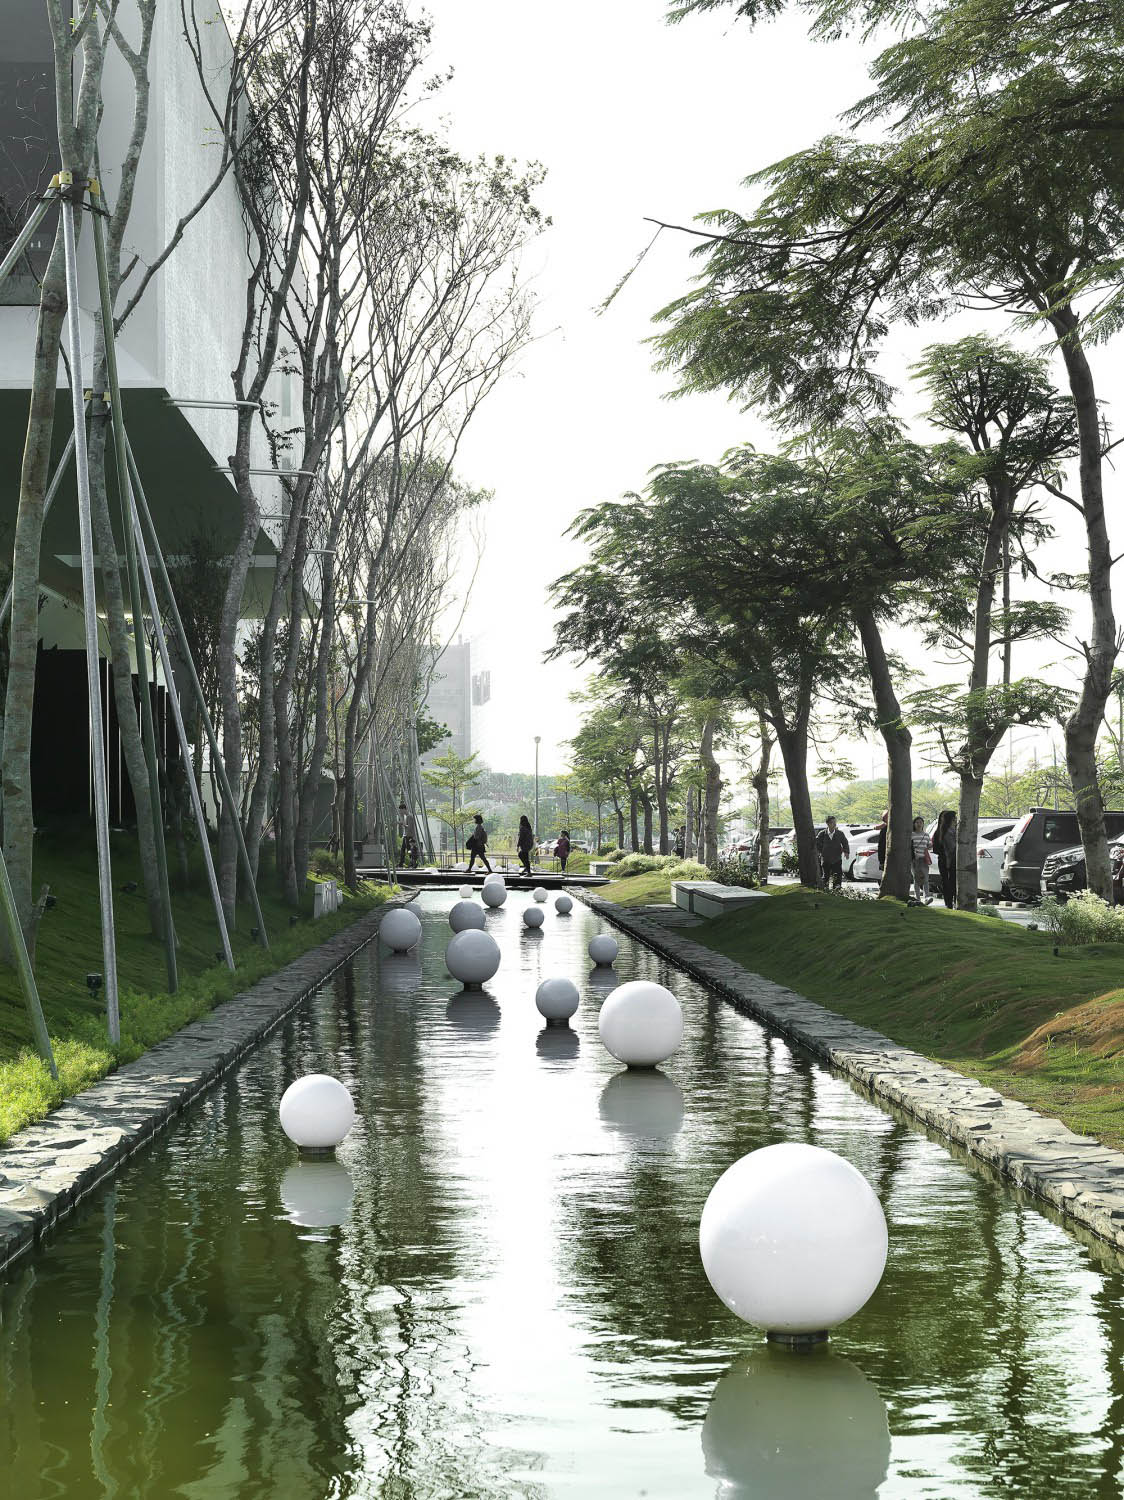 The nearly 120-meter landscape pool gives a strong impression of the building and creates a connection between the building and the water. Moooten Studio / Qimin Wu